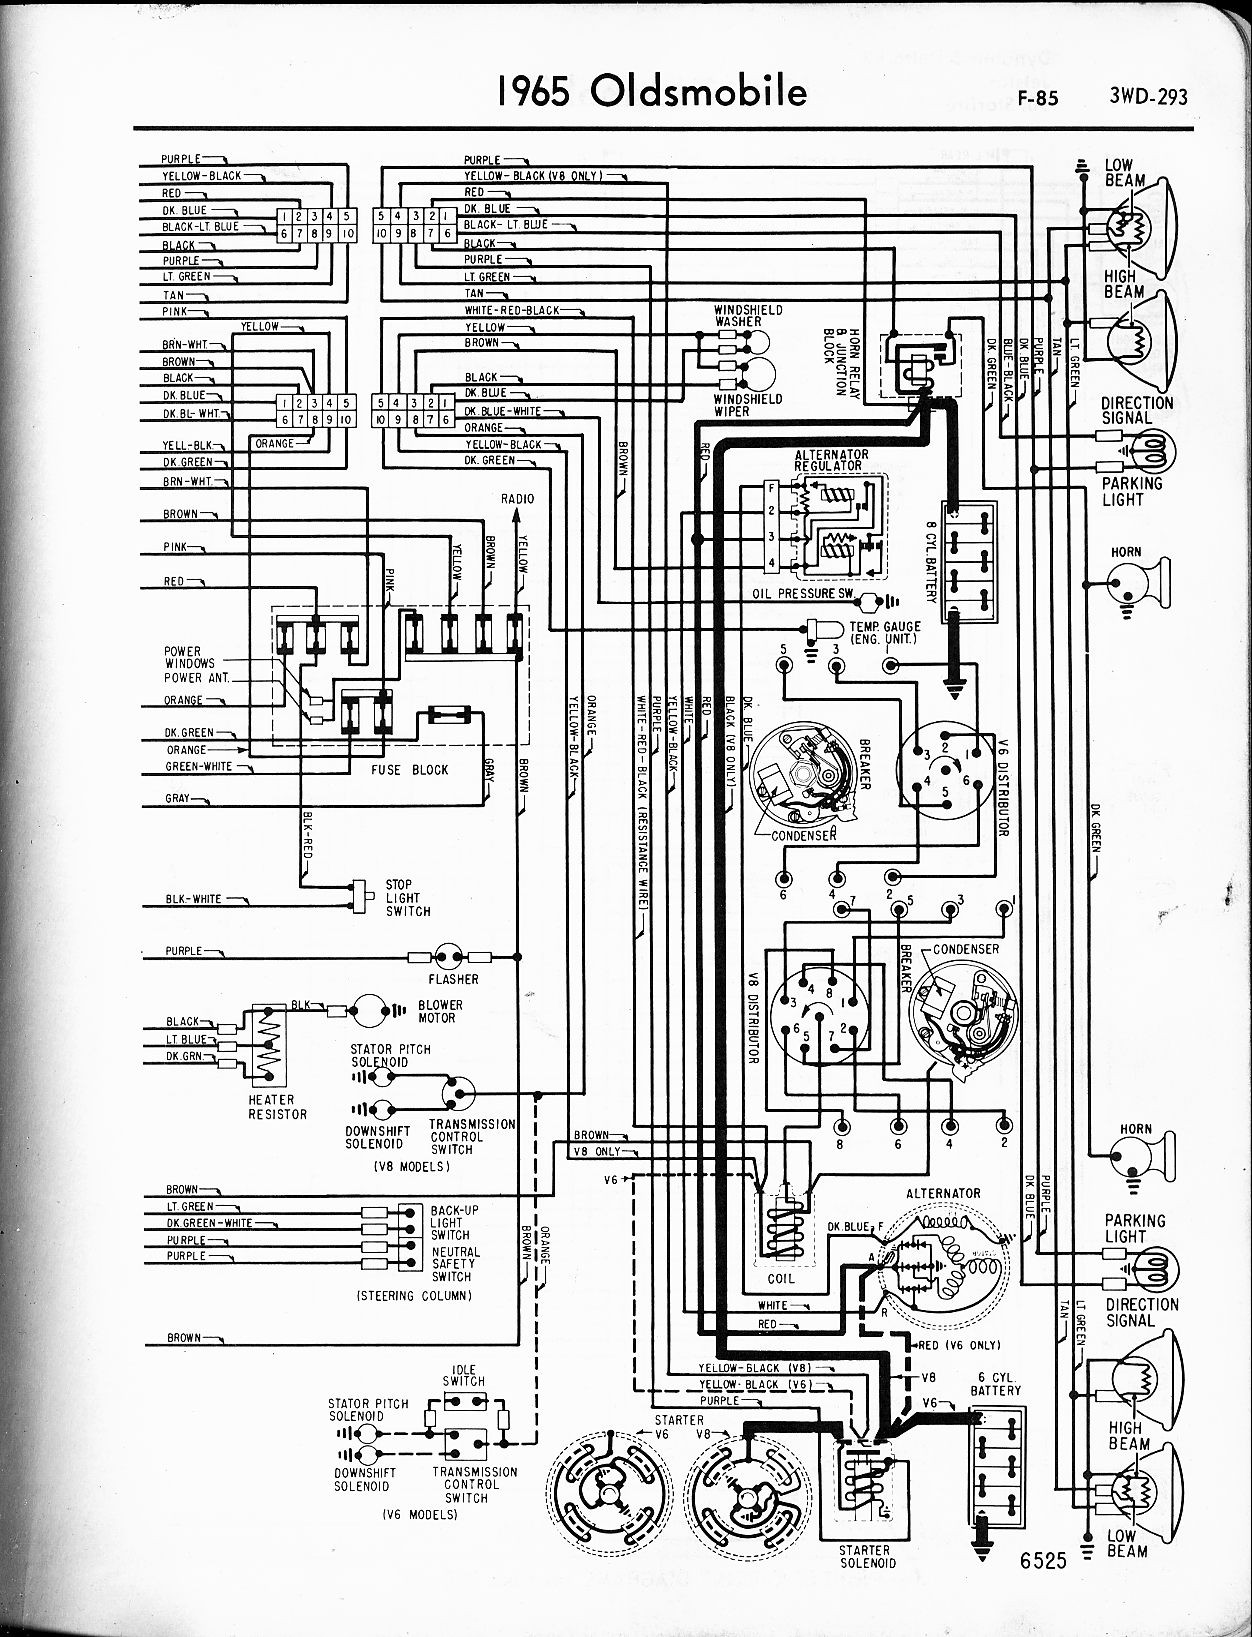 69 firebird wiring diagram blank ear without labels 68 harness library